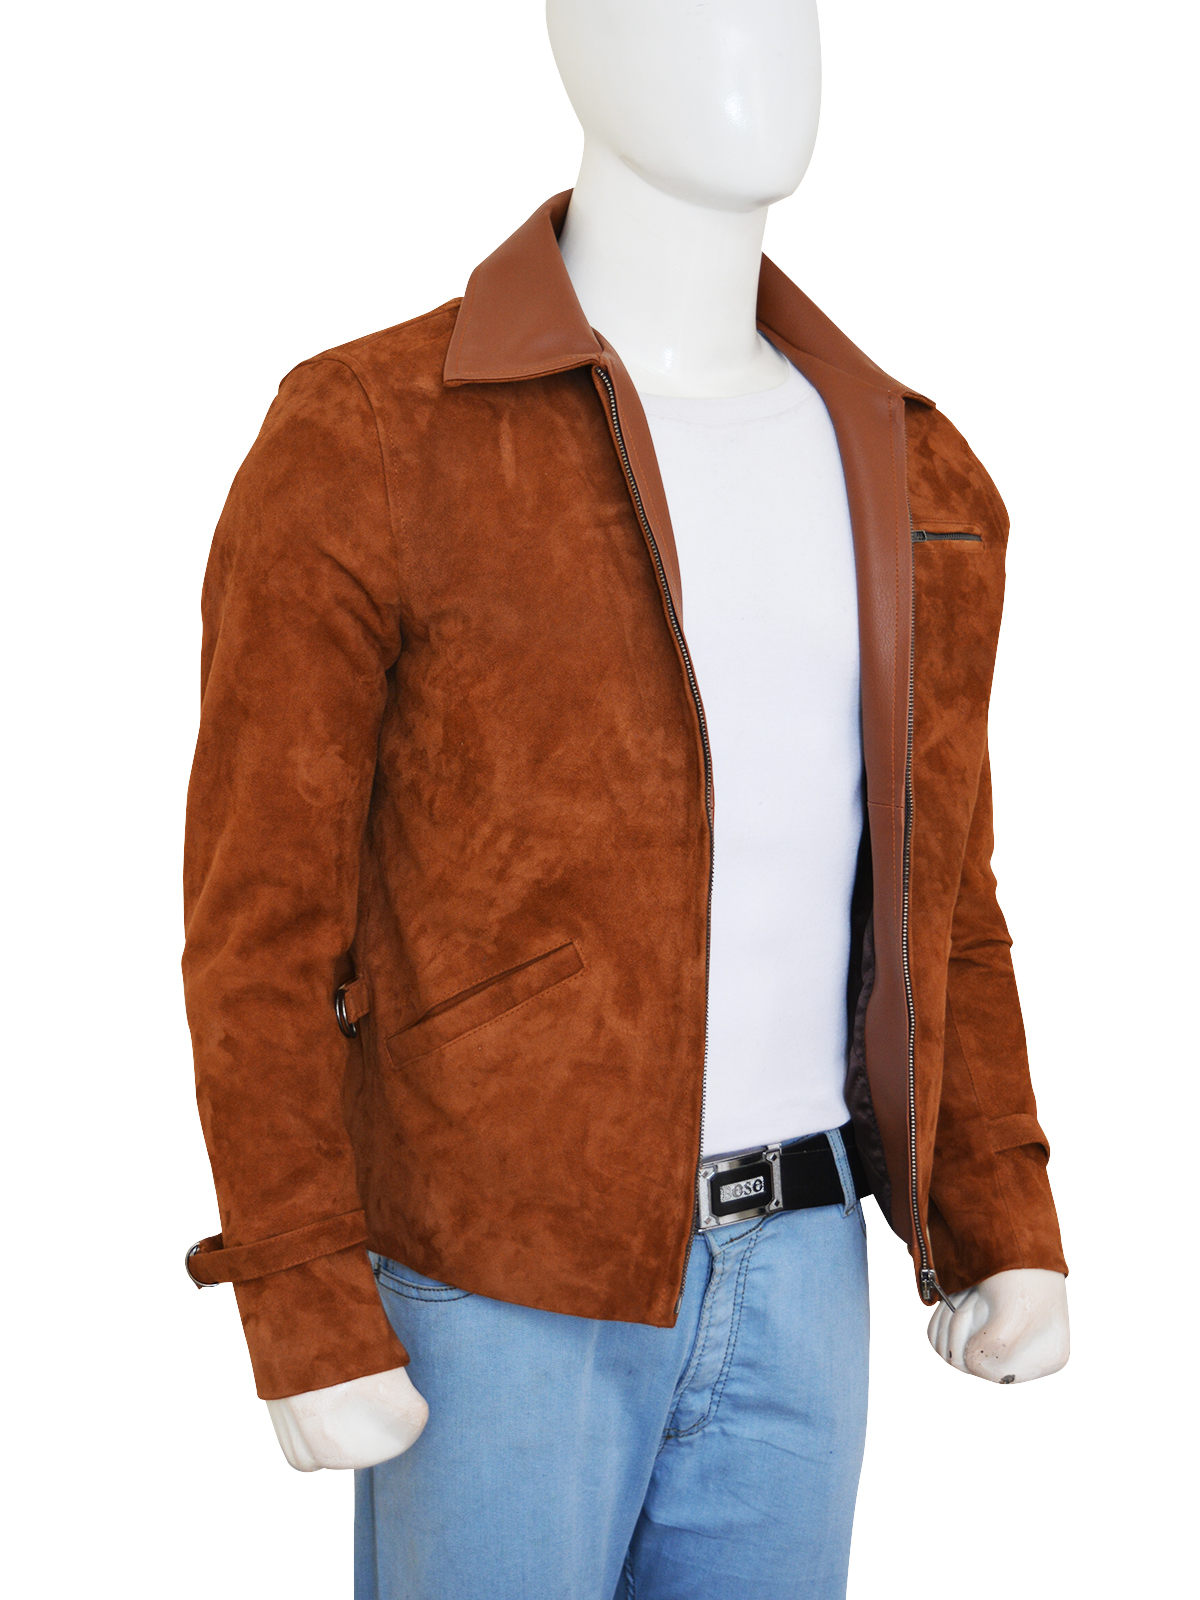 brad pitt allied suede leather jacket